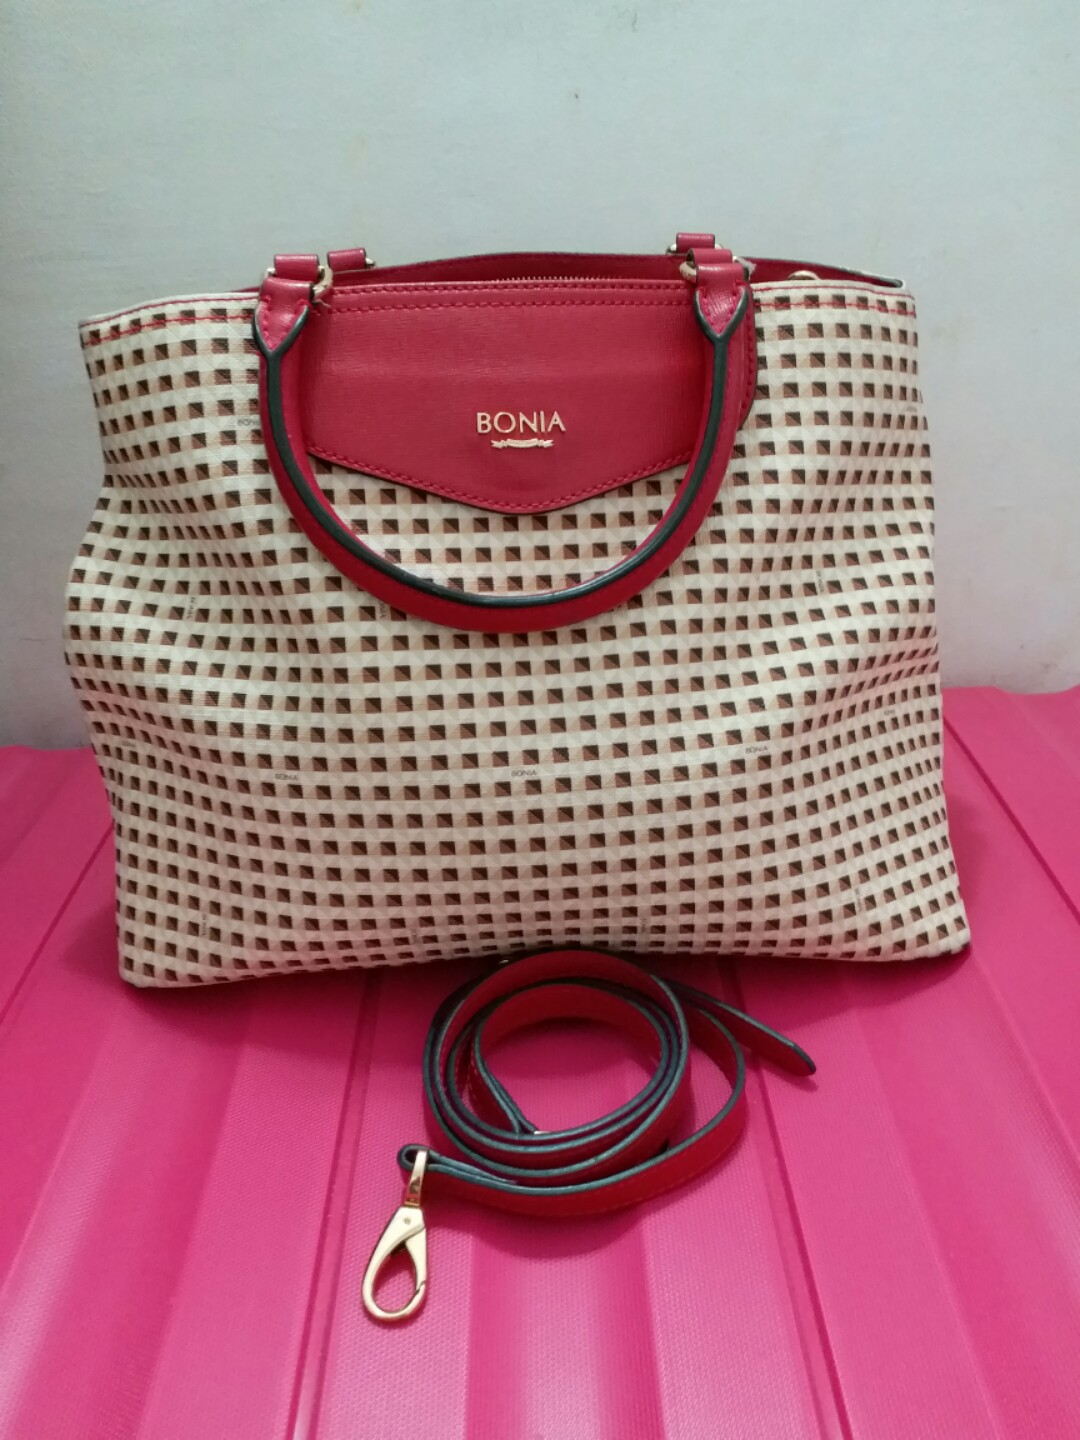 Bonia Luxury Bag cf4bfd4ef0